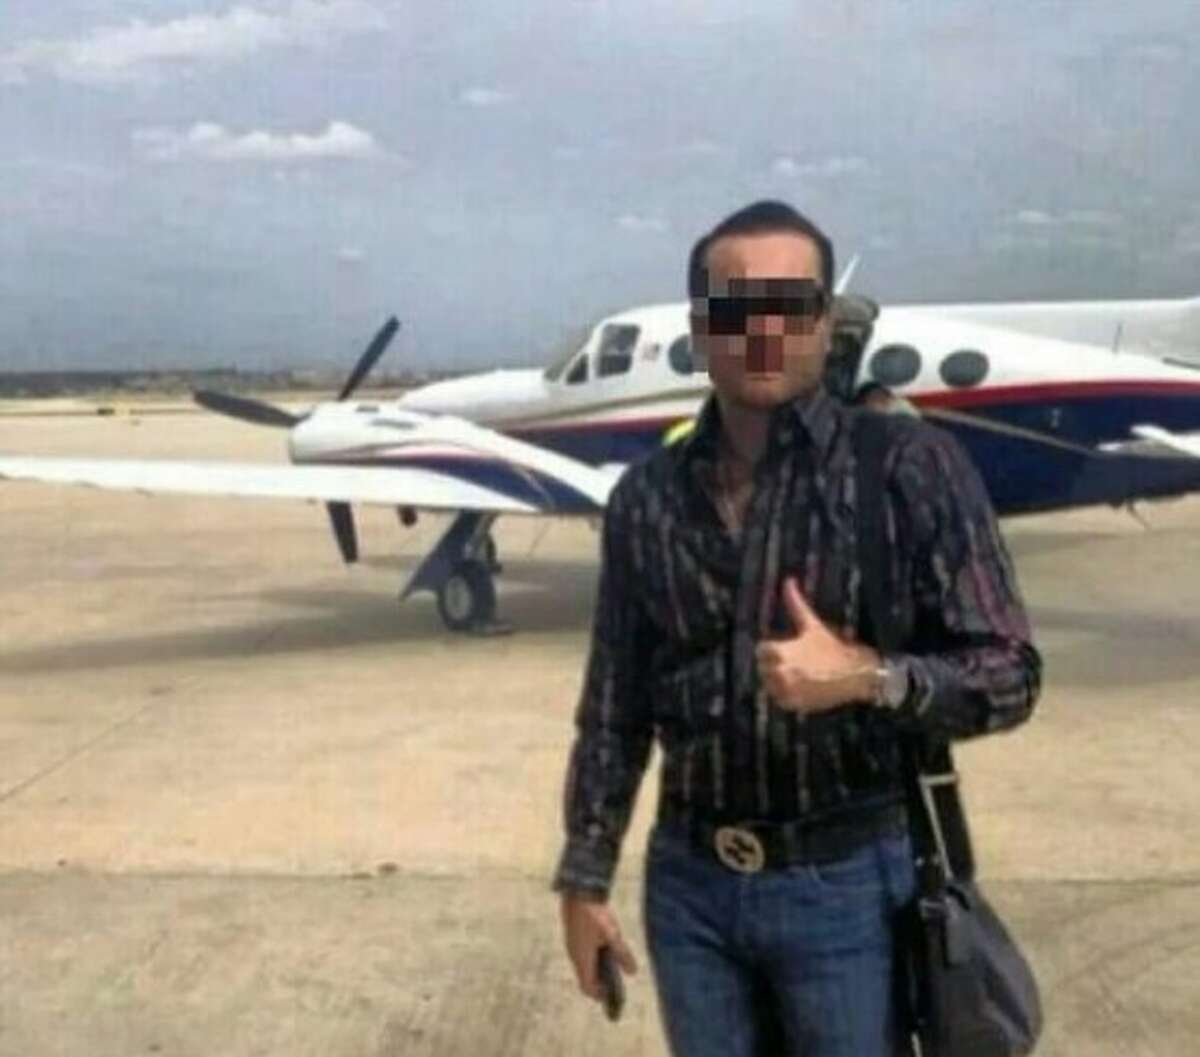 Ivan Guzman, a son of the infamous drug lord Joaquin